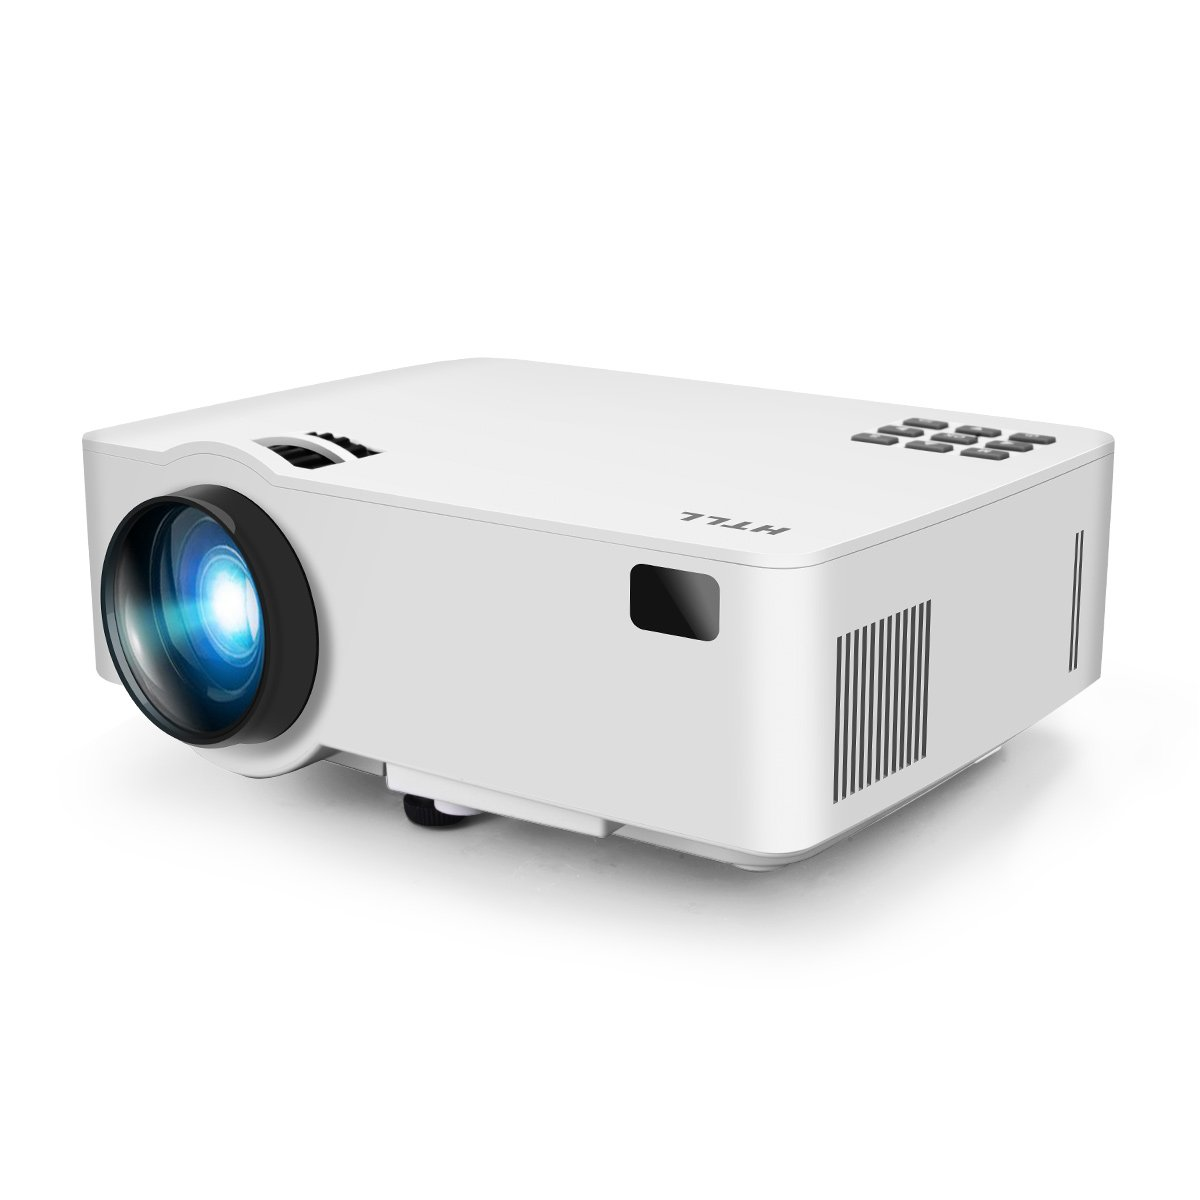 Video Projector, HTLL Home Cinema Mini Projector, 1500Lumens, HD Projector Support 1080P, HDMI, VGA, USB, AV,SD Input for Home Entertainment, TV, Laptop, Gaming, Smartphone etc (4.0-Inch) (1) by HTLL